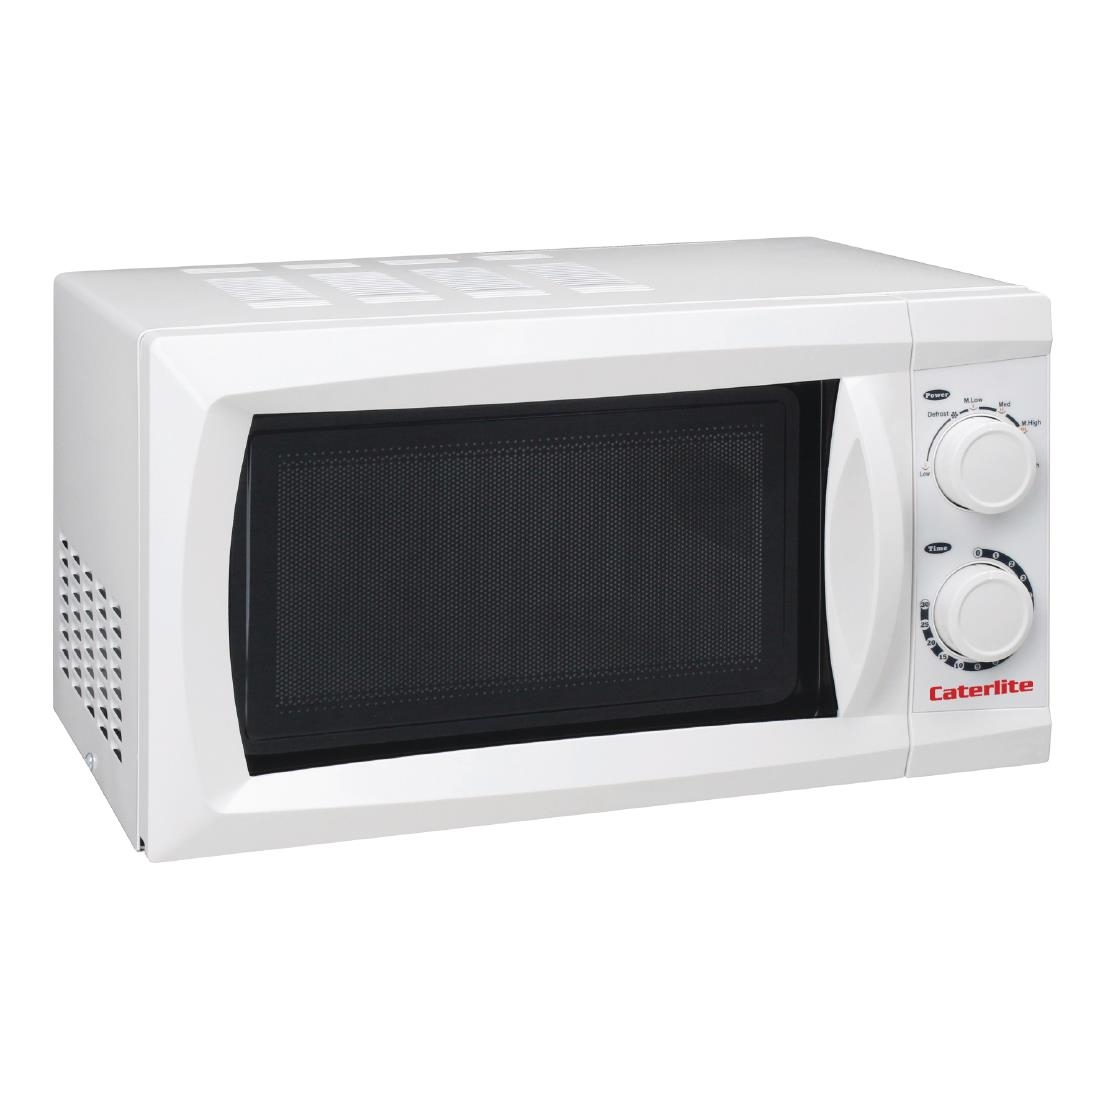 Image of Caterlite Compact Microwave 17ltr 700W